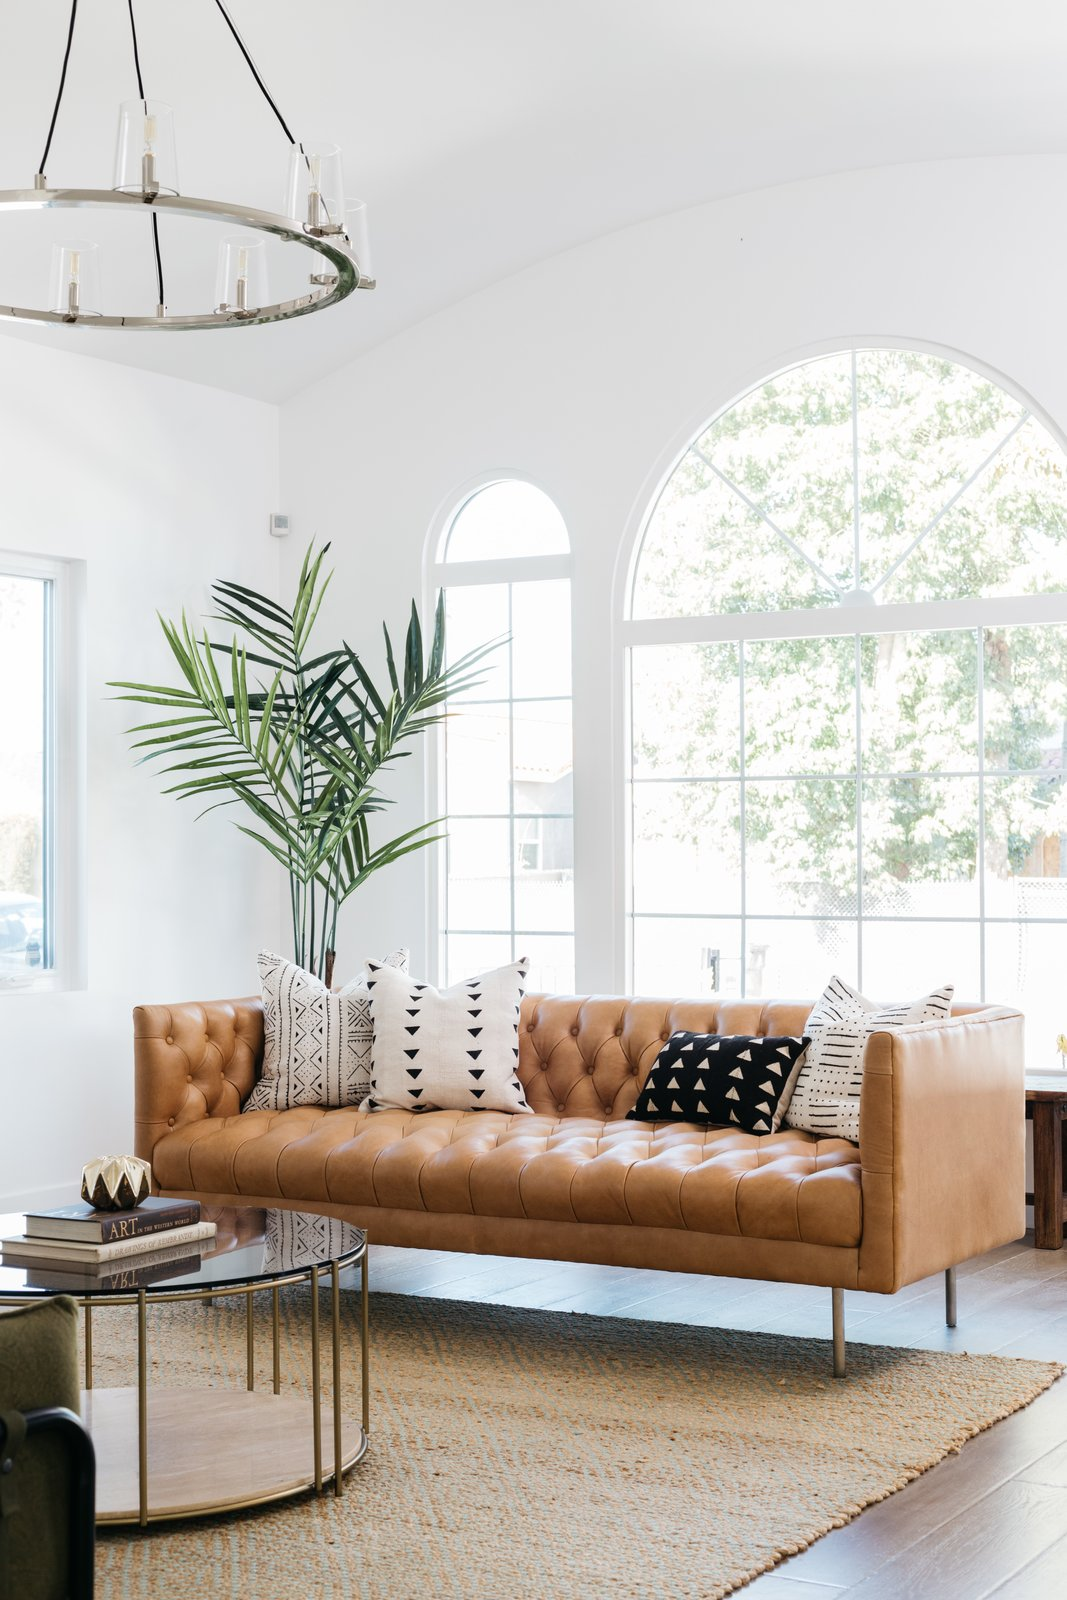 Living Room, Rug Floor, Sofa, Coffee Tables, Medium Hardwood Floor, and Pendant Lighting  The large arched windows allow ample natural light to flood the interiors.     Photo 3 of 20 in An Updated Spanish-Style Abode with an Artist Studio Hits the Market at $1.1M in L.A.